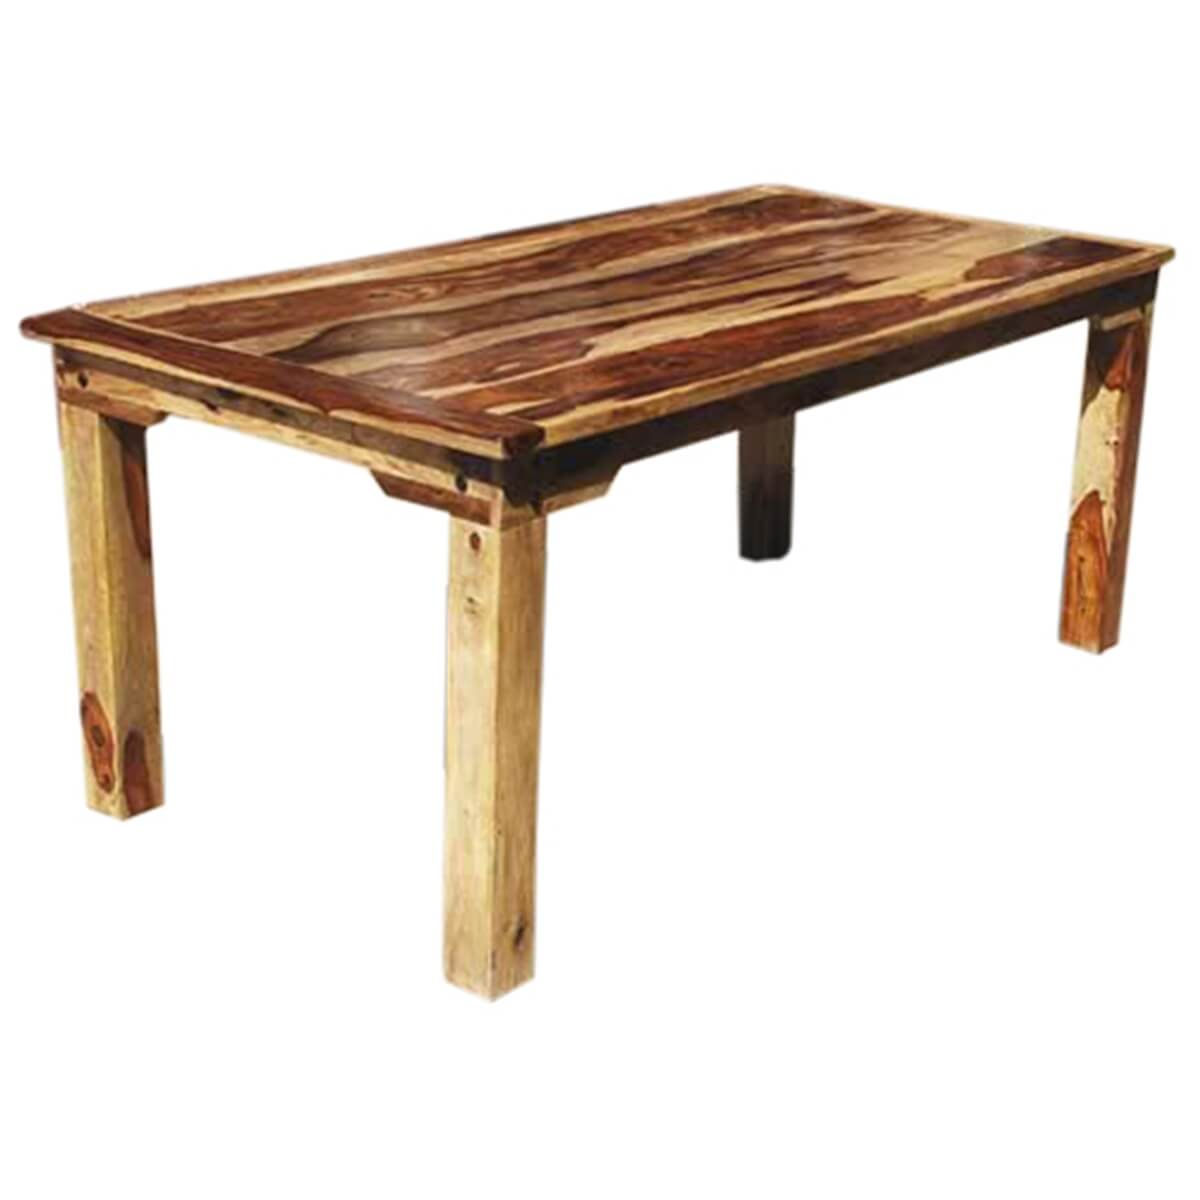 Rustic formal dining table rustic oak finish formal for Formal dining table